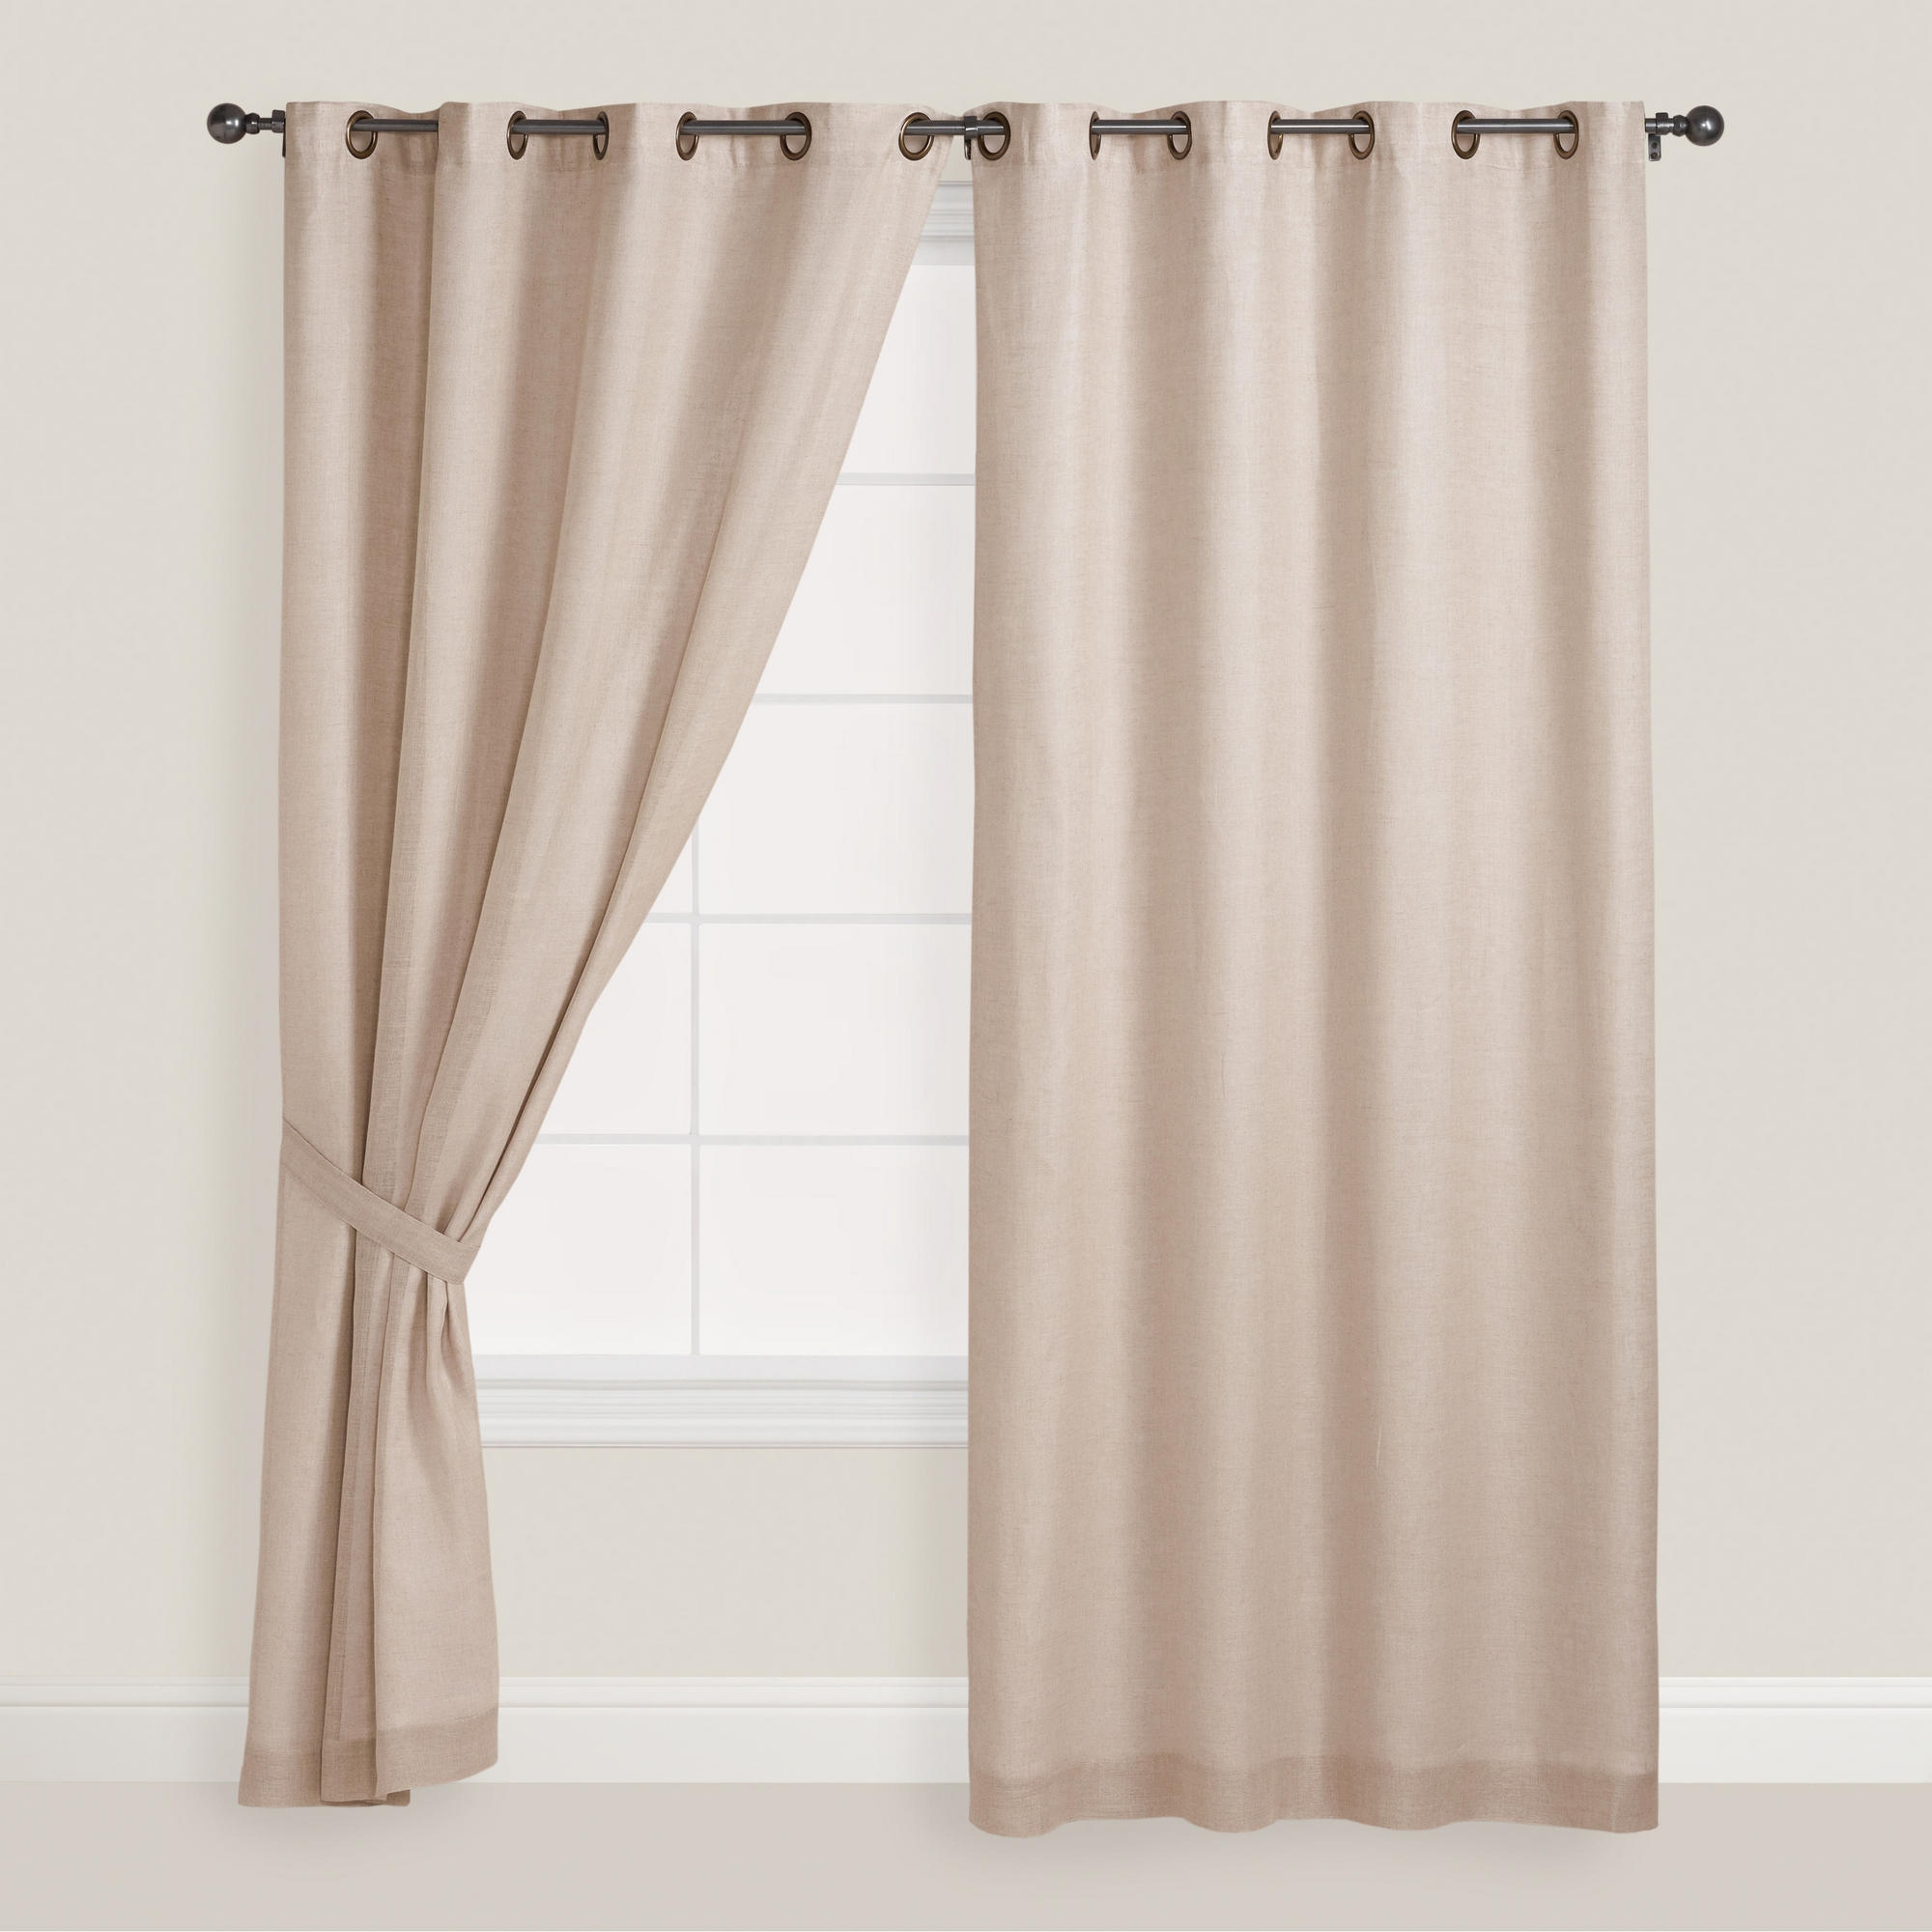 Curtains Blinds Ikea Decoration White Linen Decor 0285042 Pe422174 In Linen Luxury Curtains (Image 4 of 15)